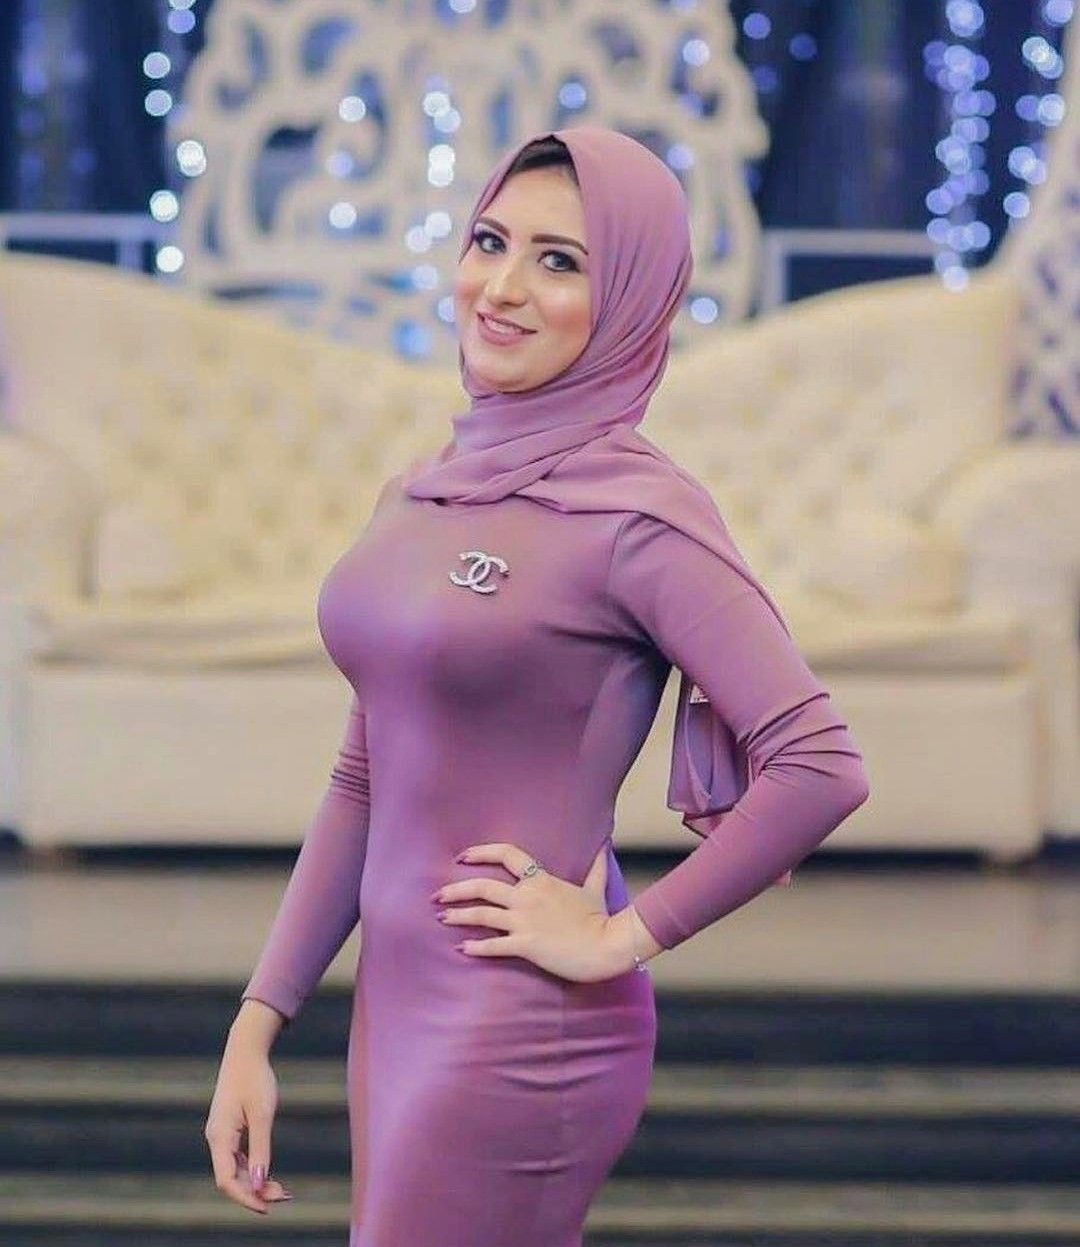 Hot chick with hijab